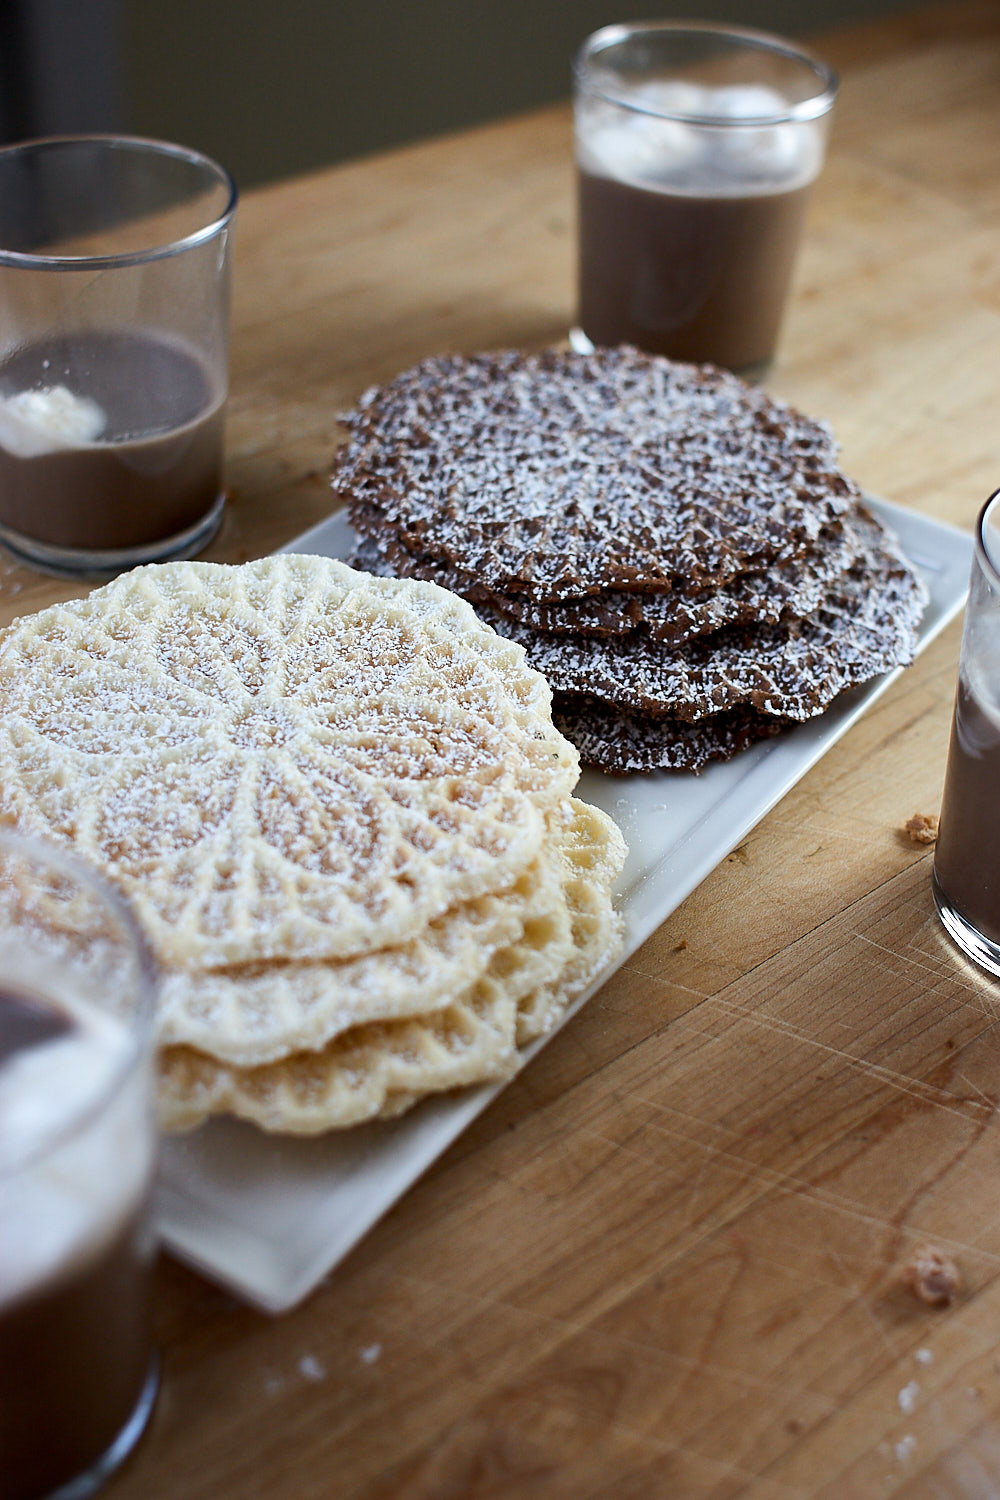 Vanilla and chocolate pizzelle cookies on a tray with glasses of chocolate milk